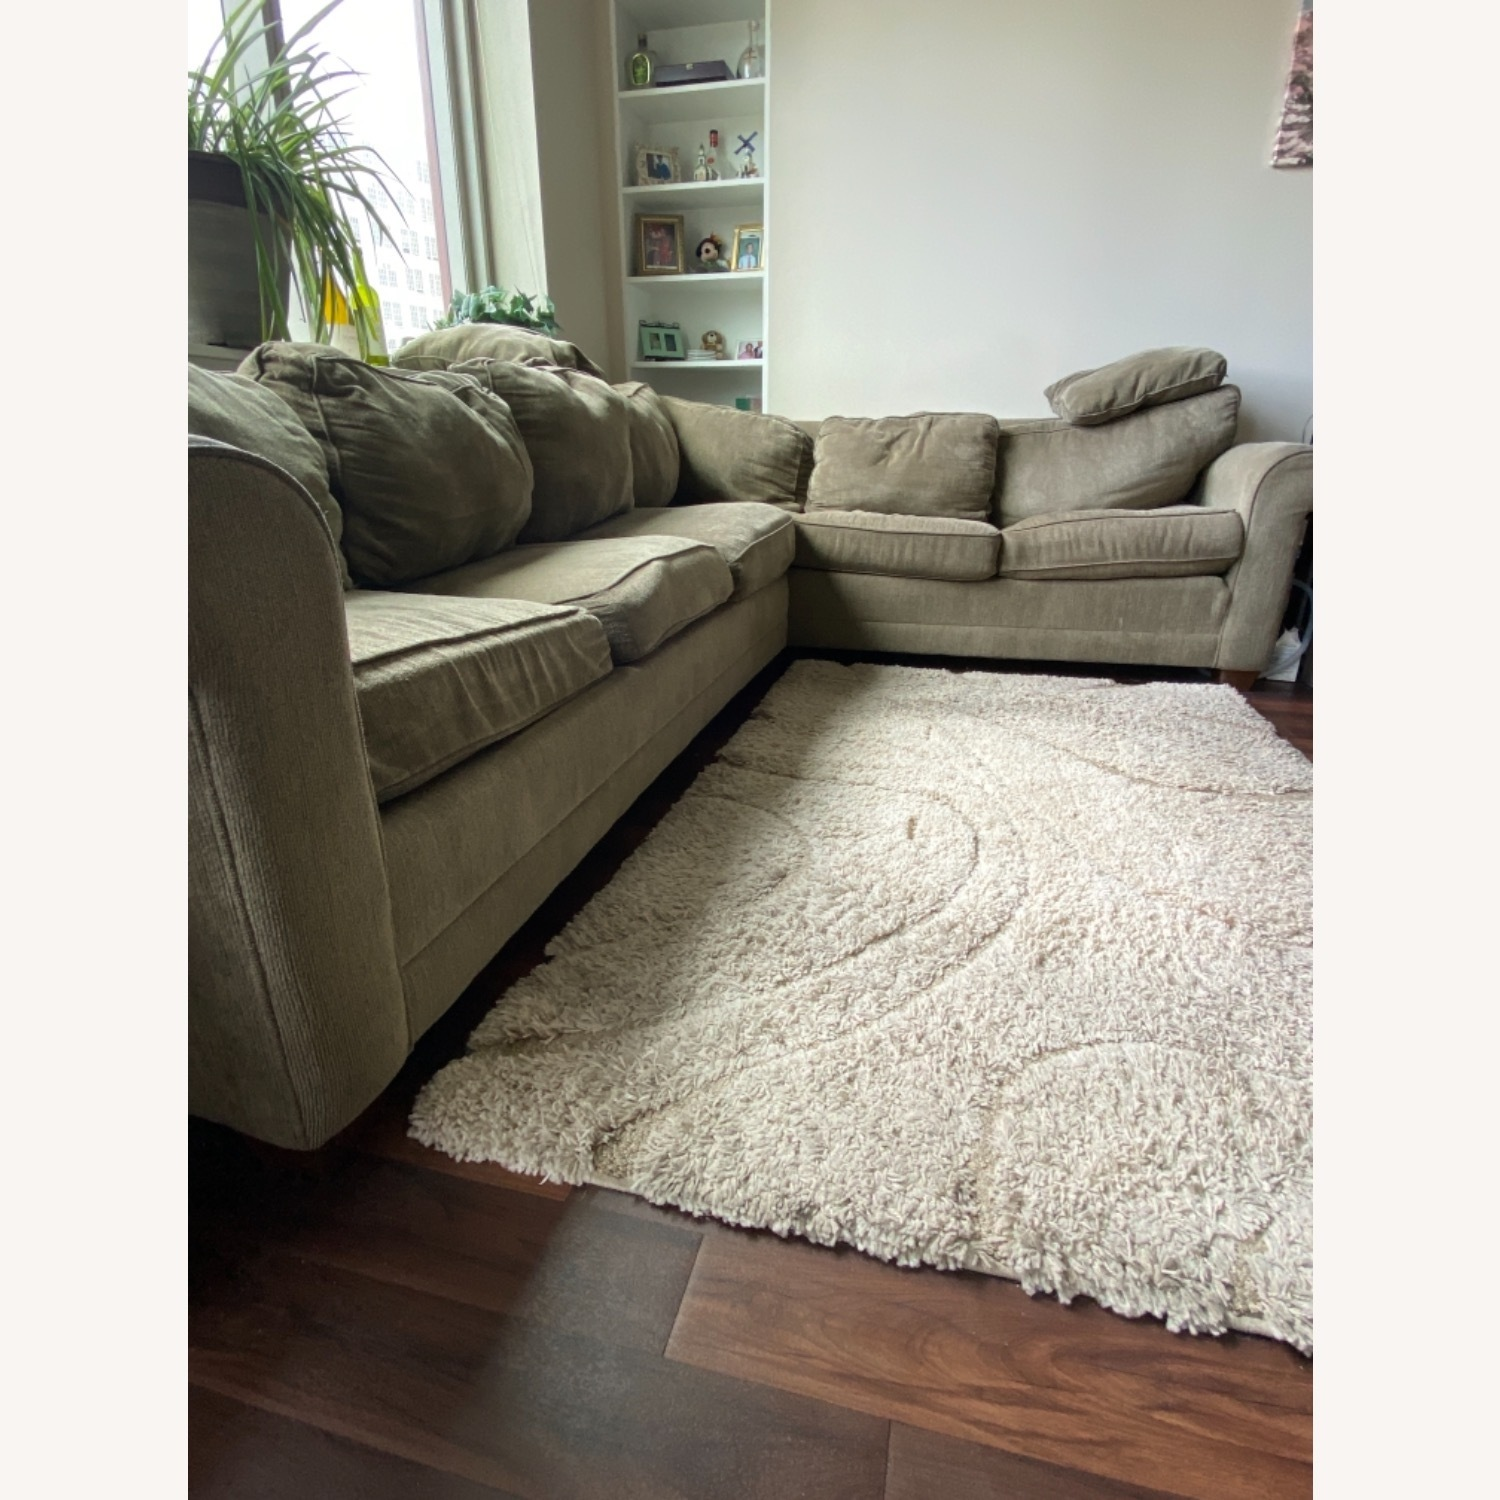 Olive Green 2 Piece Sectional Sleeper Sofa - image-2